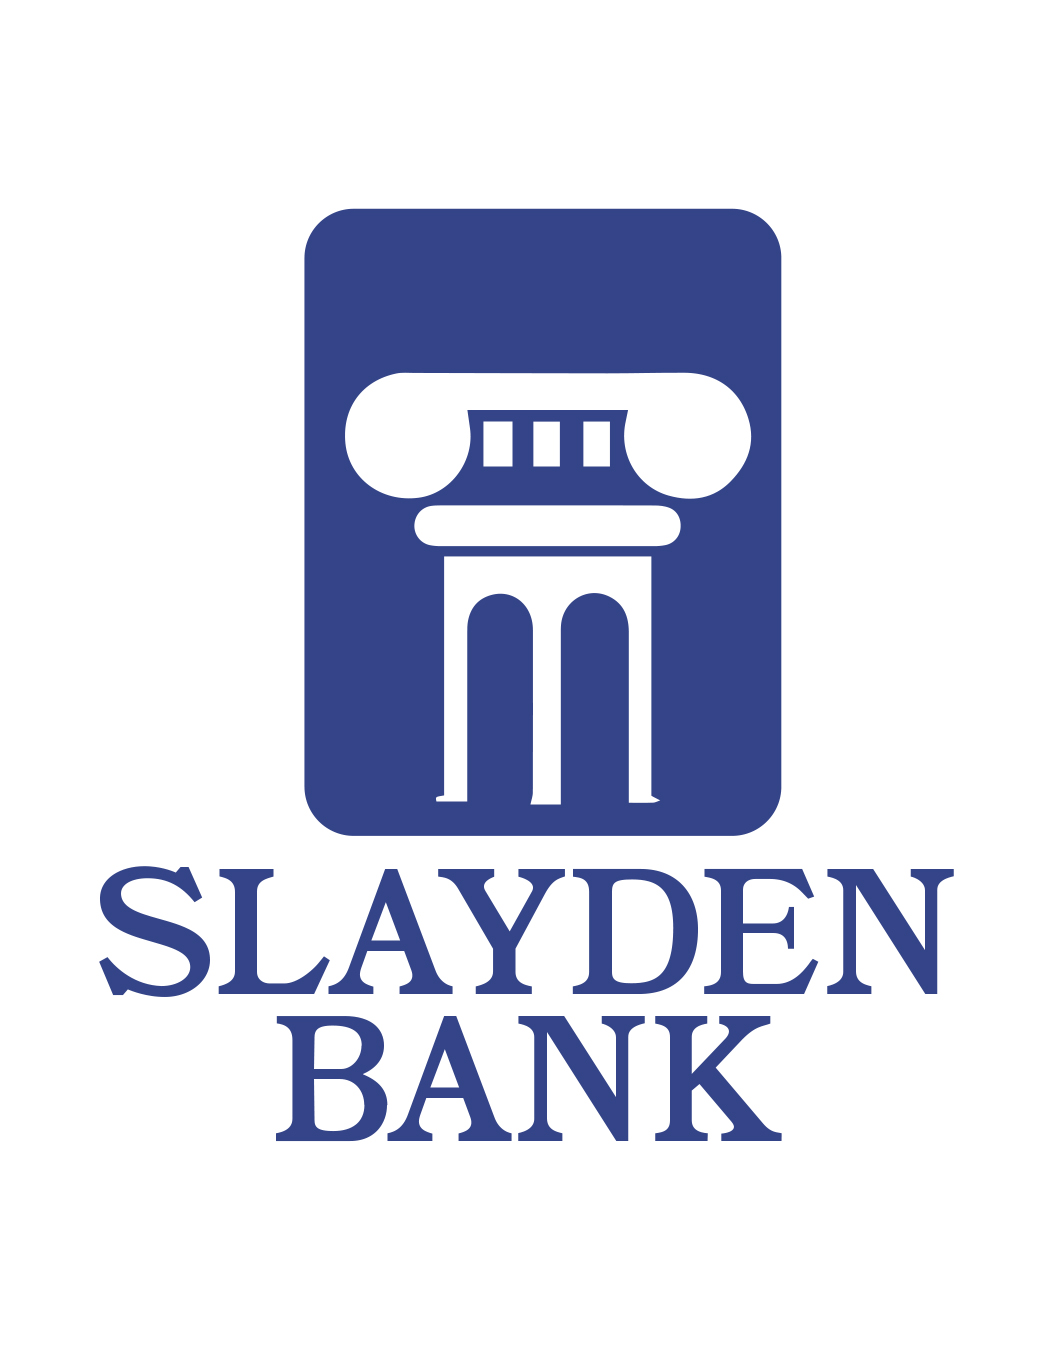 slayden bank logo.jpg